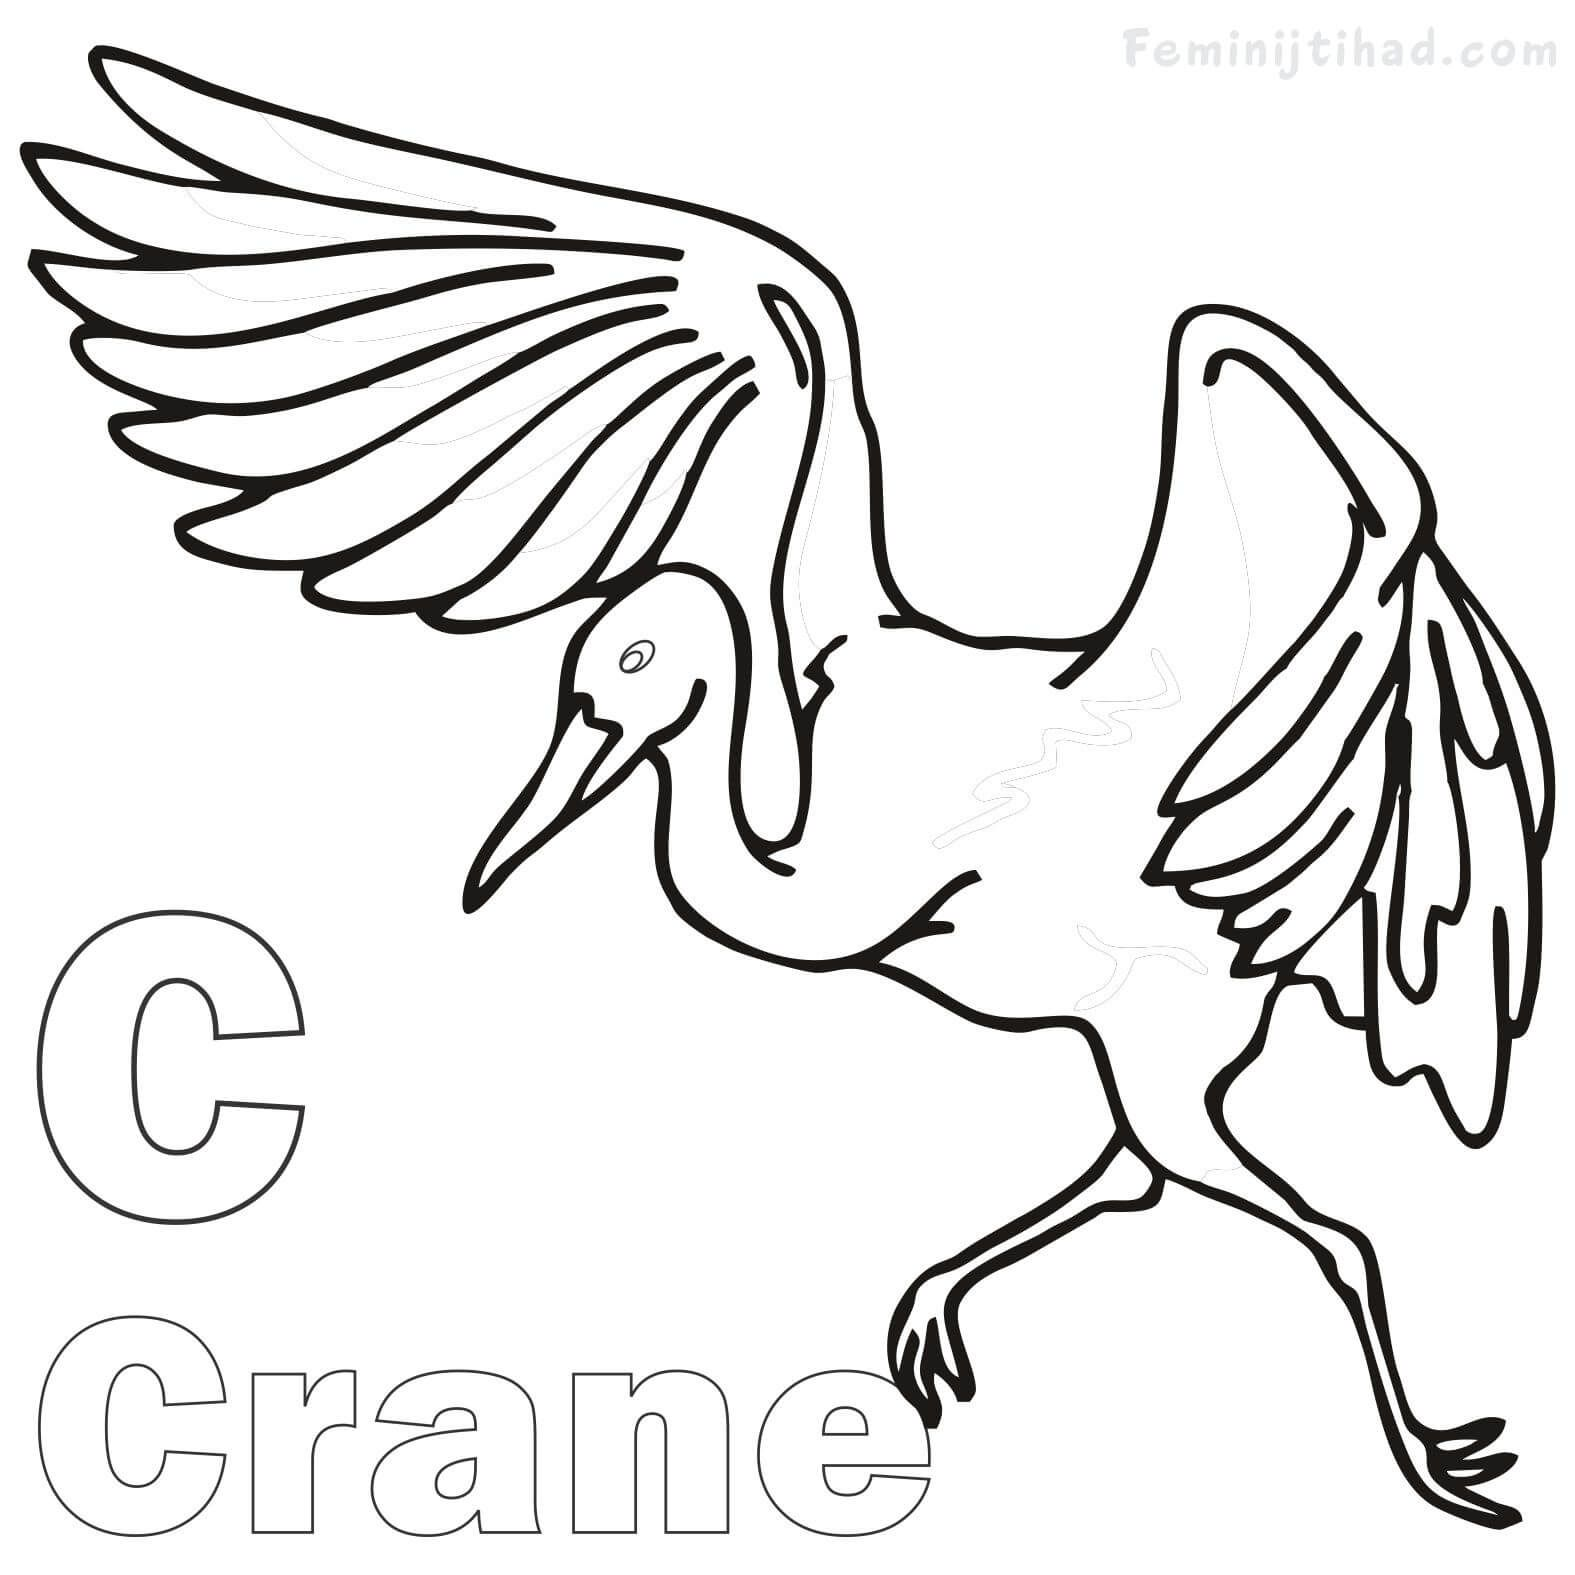 Letter C For Crane Coloring Pages For Kids Animal Coloring Pages